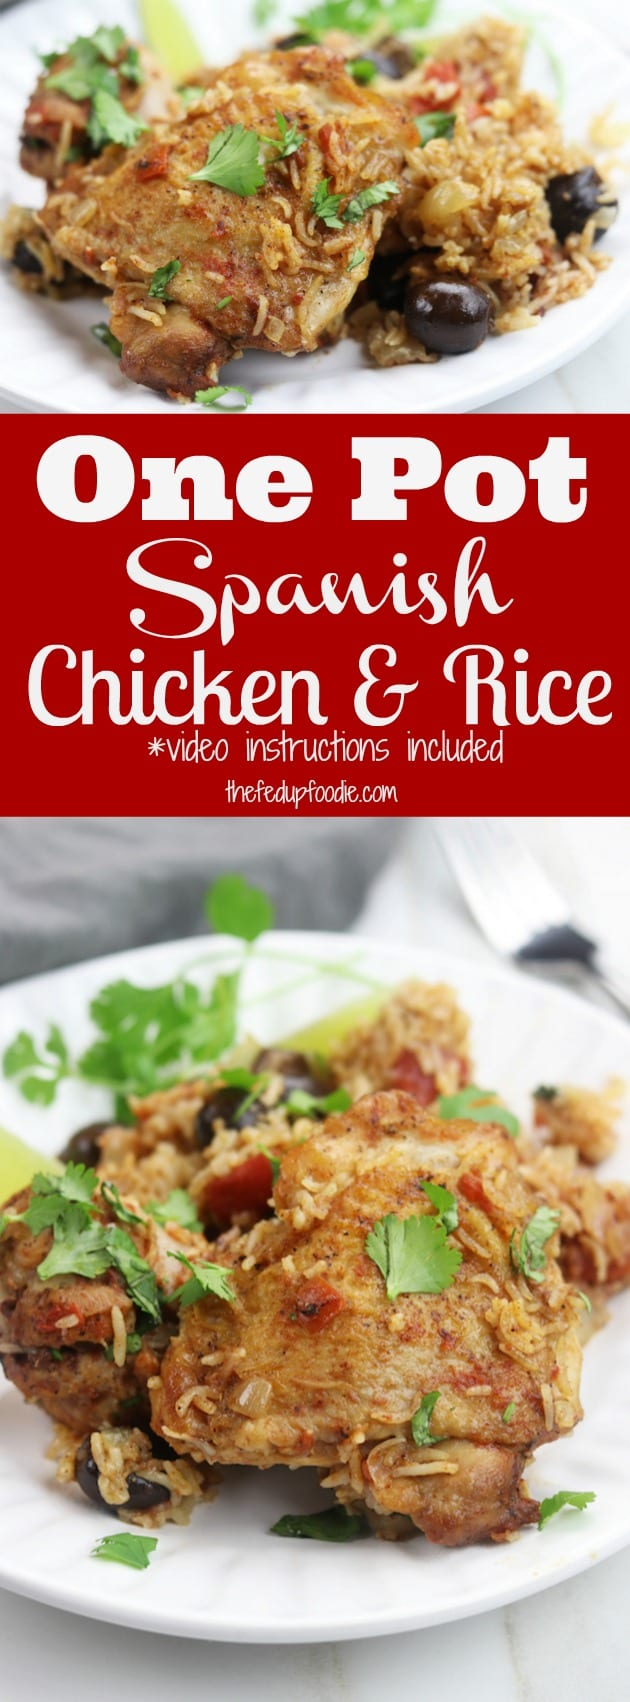 This One Pot Spanish Chicken and Rice recipe is a simple, comforting meal bursting with flavor. An easy 15 minutes to prep and then pop in the oven to bake. This has become one of my favorite go to recipes that even children love. https://www.thefedupfoodie.com